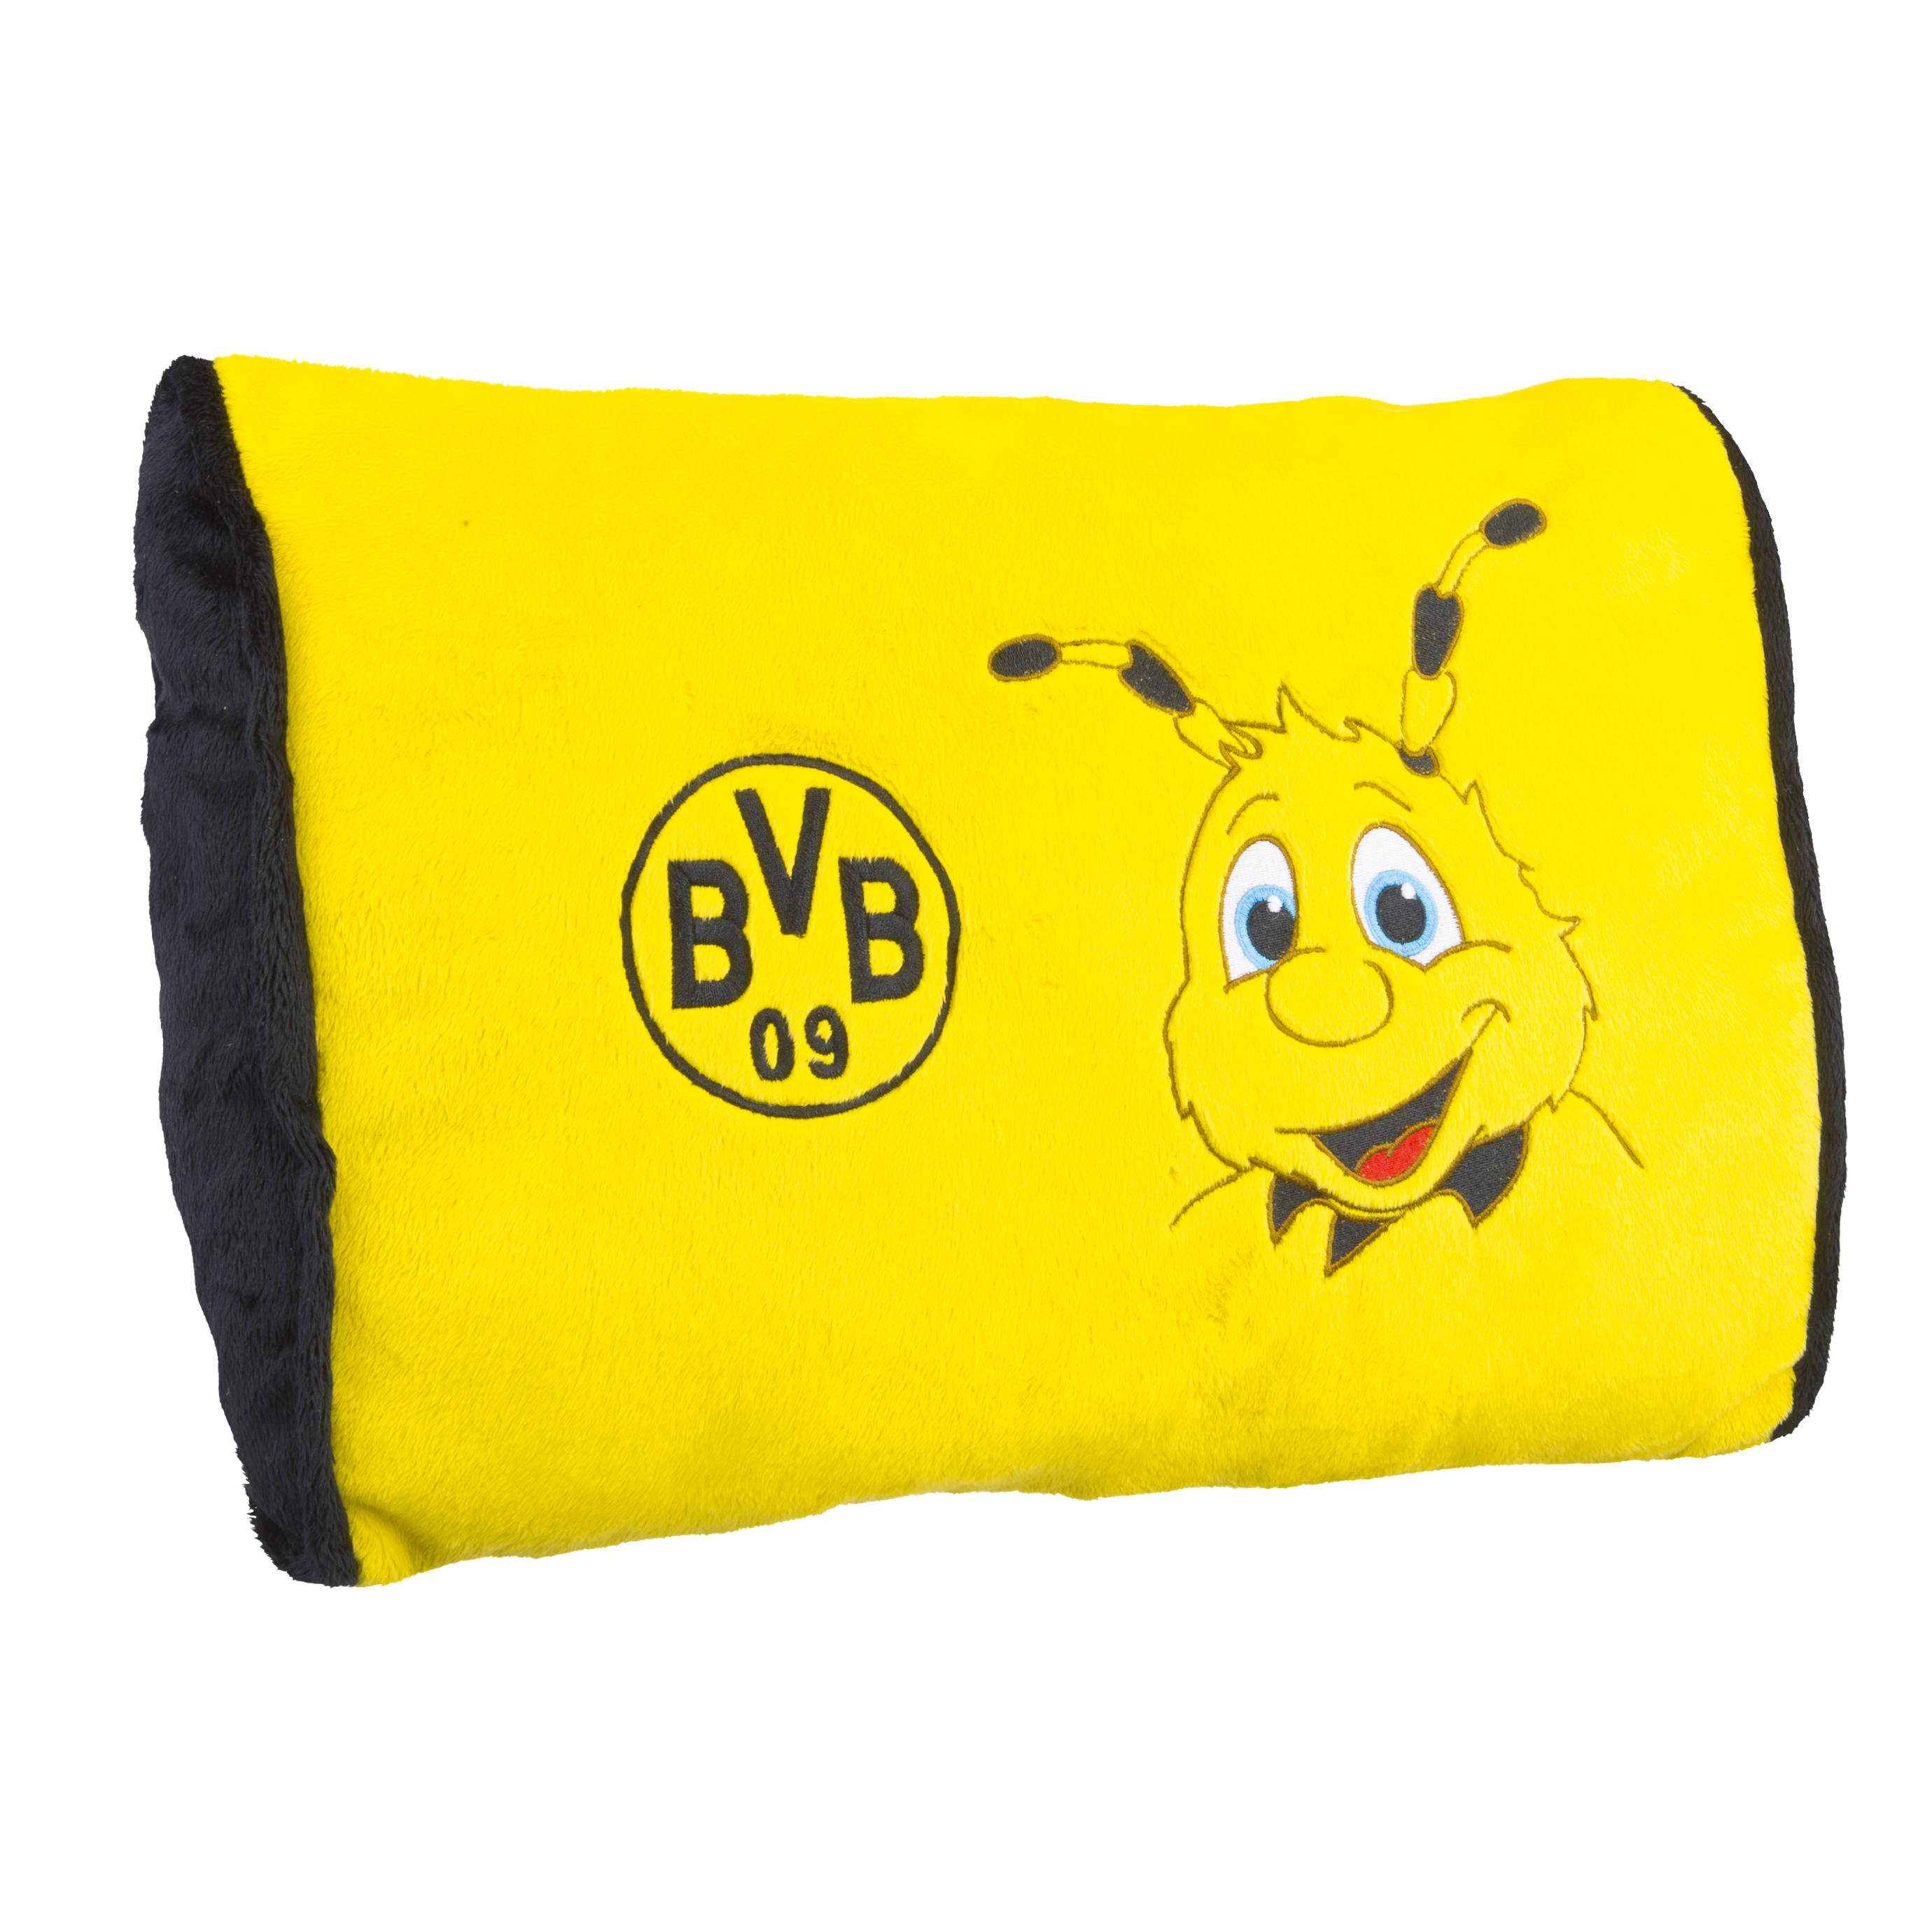 Image of BVB EMMA plush pillow